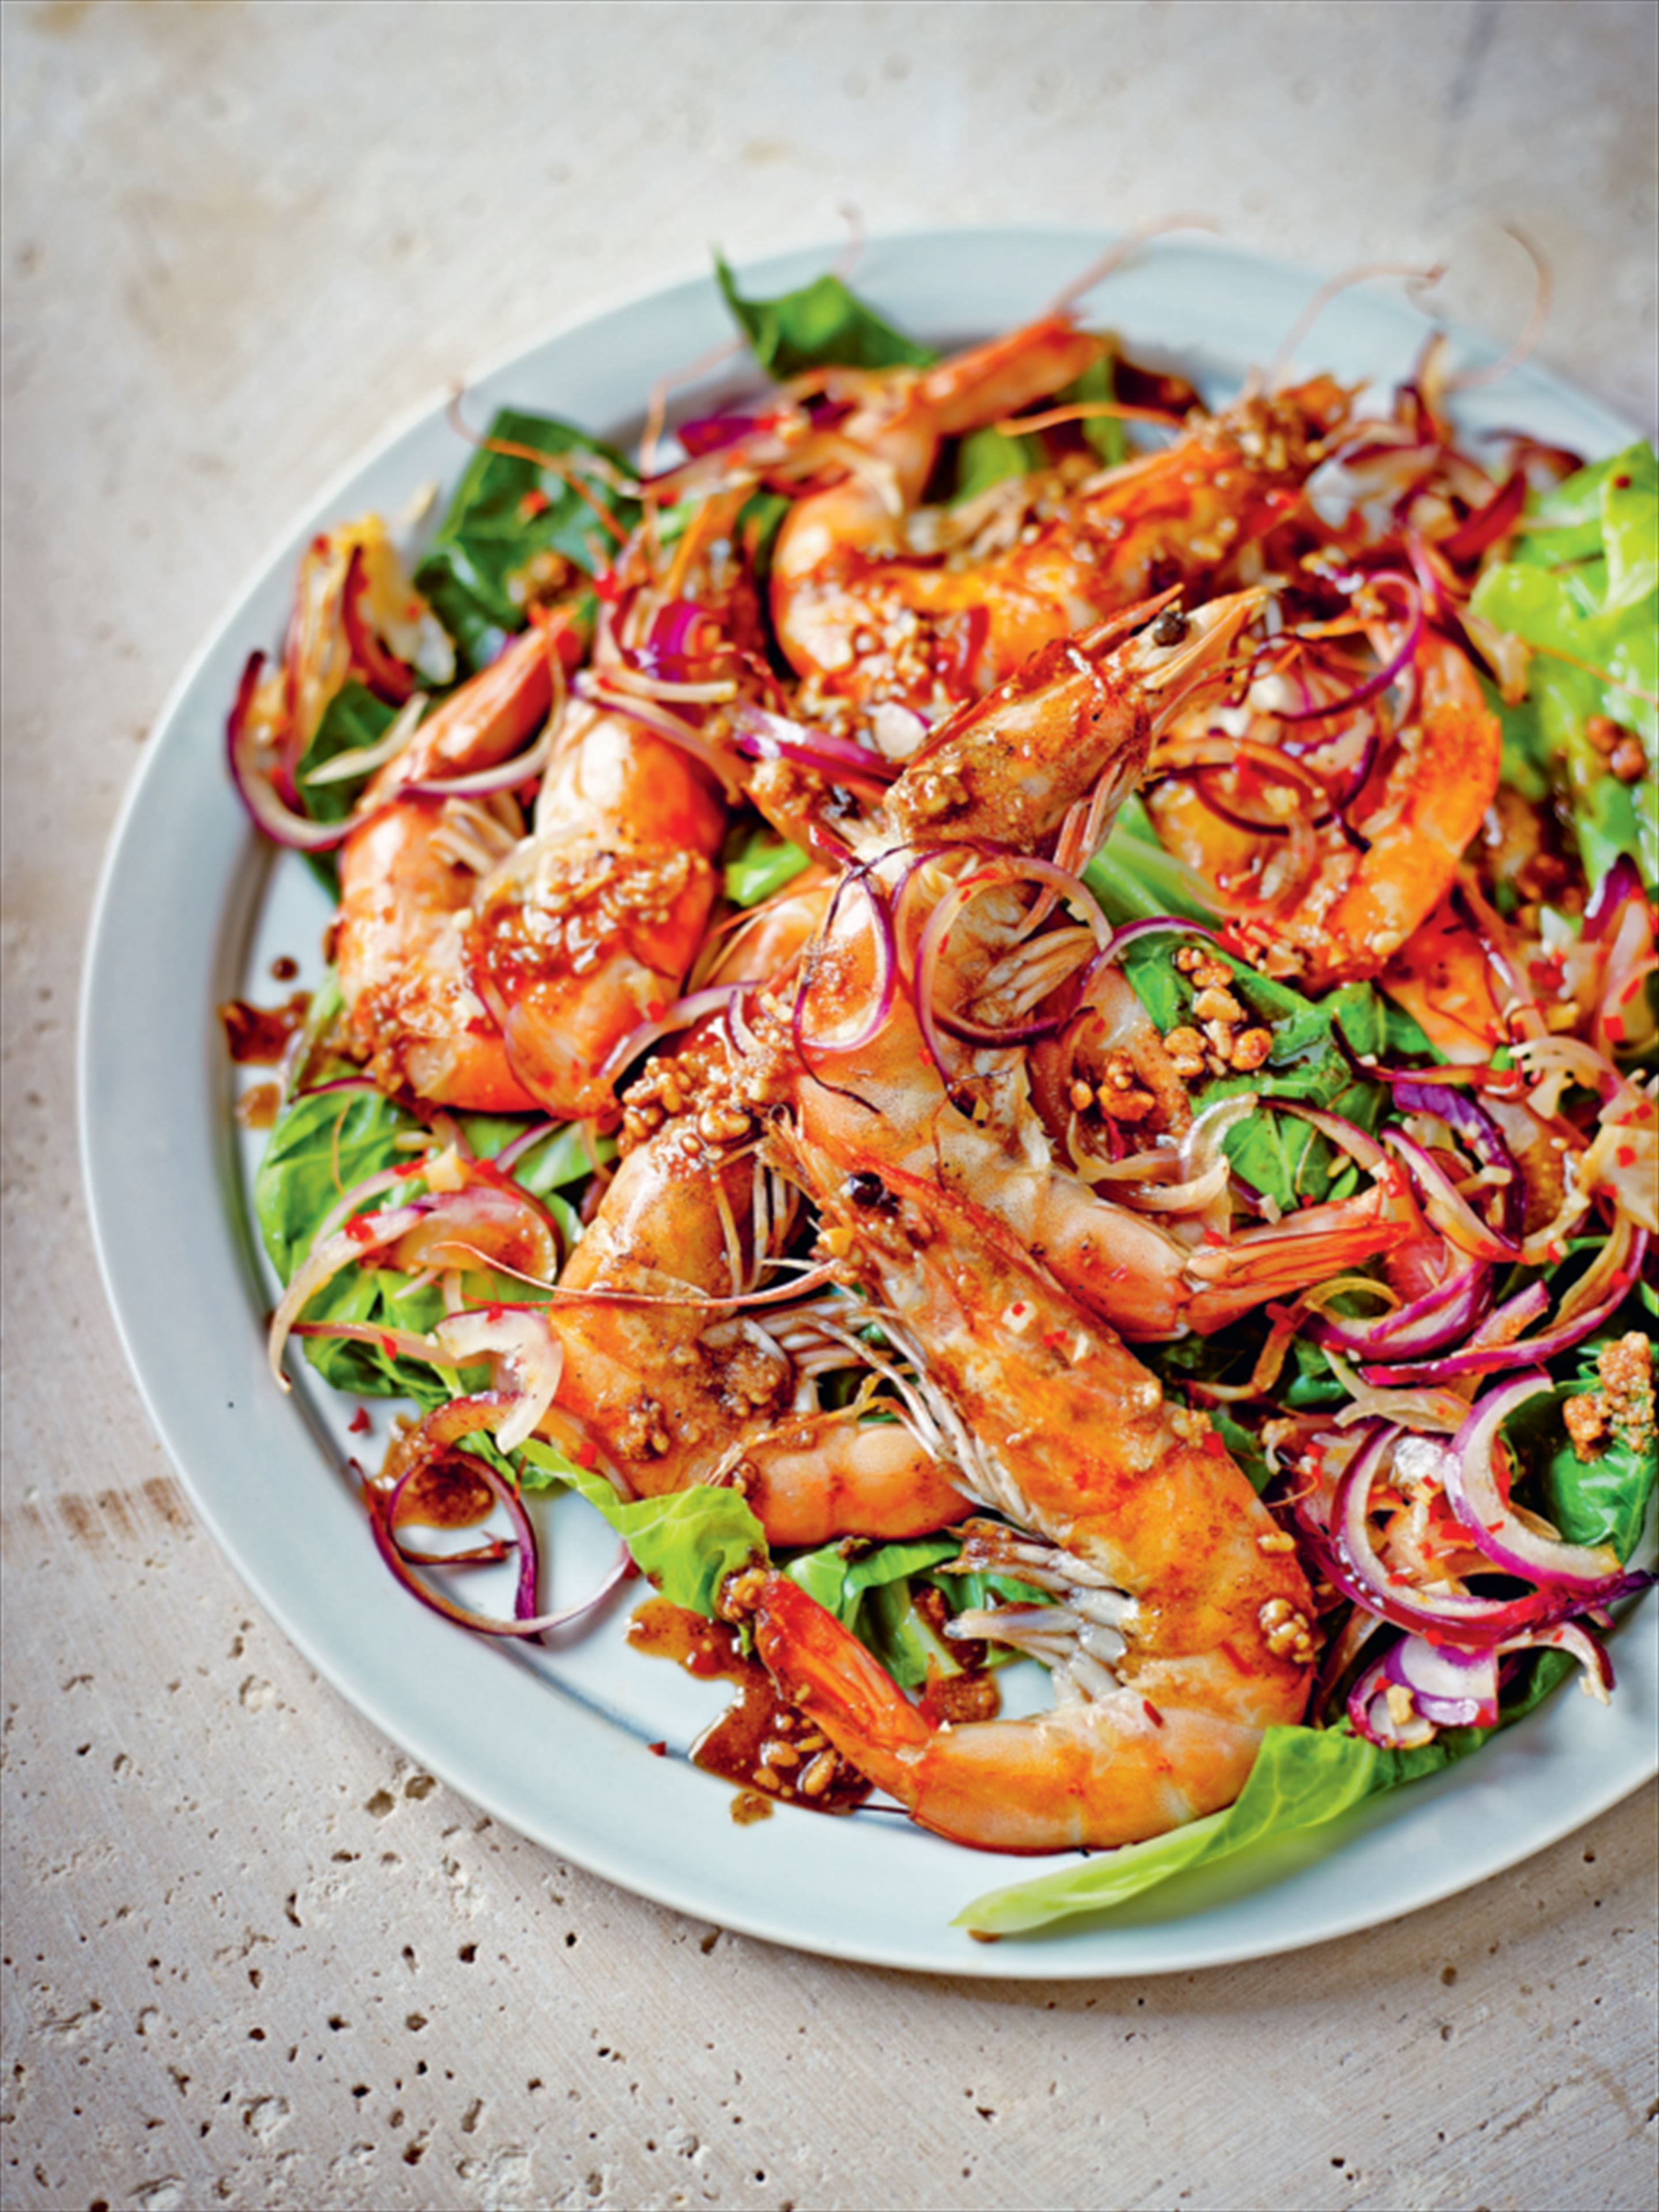 Satay prawns and greens